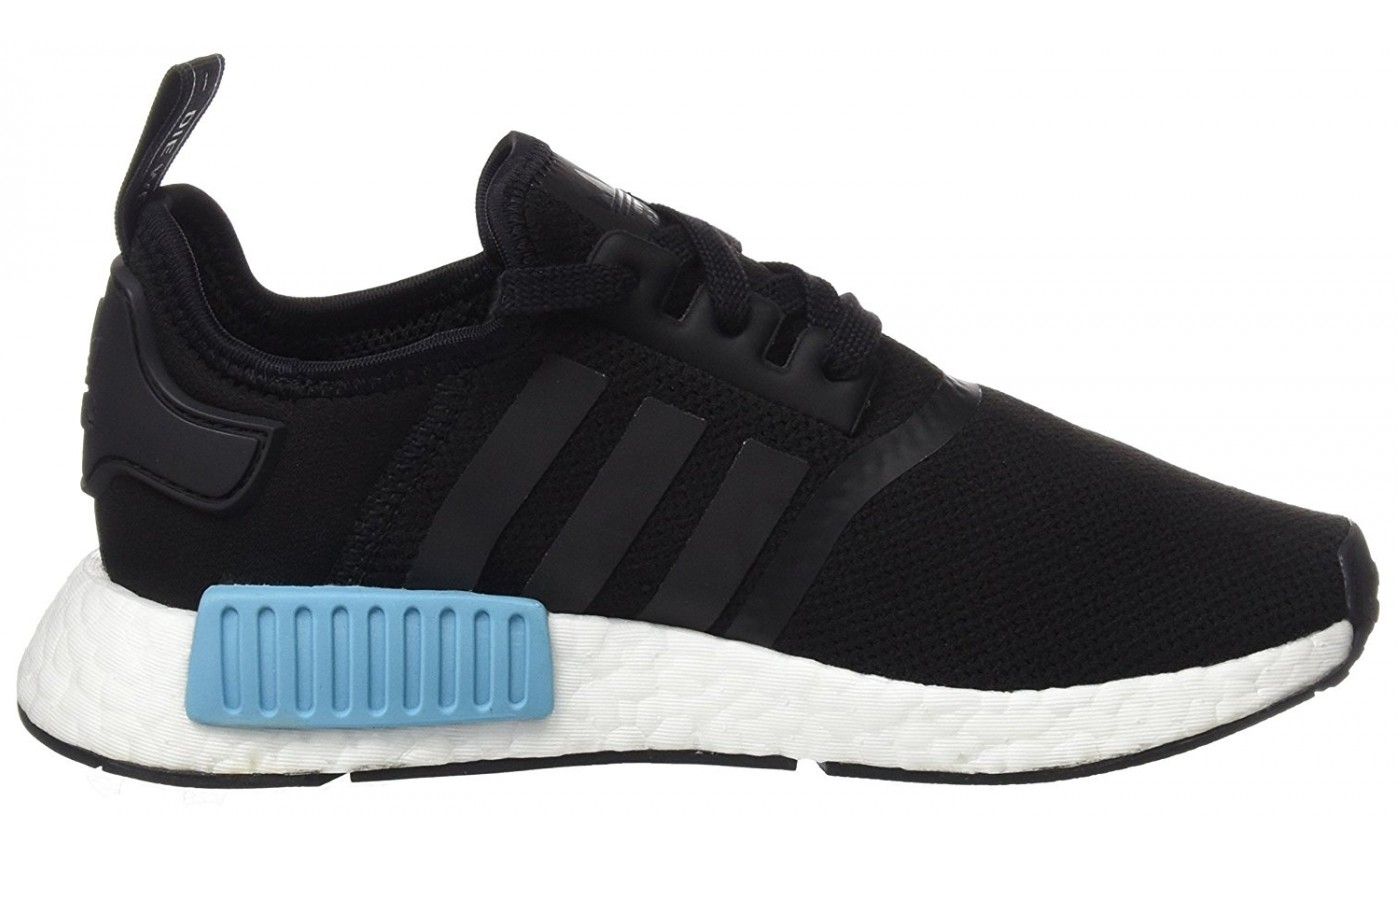 0a0c36449 Adidas NMD R1 Reviewed   Tested for Performance in 2019